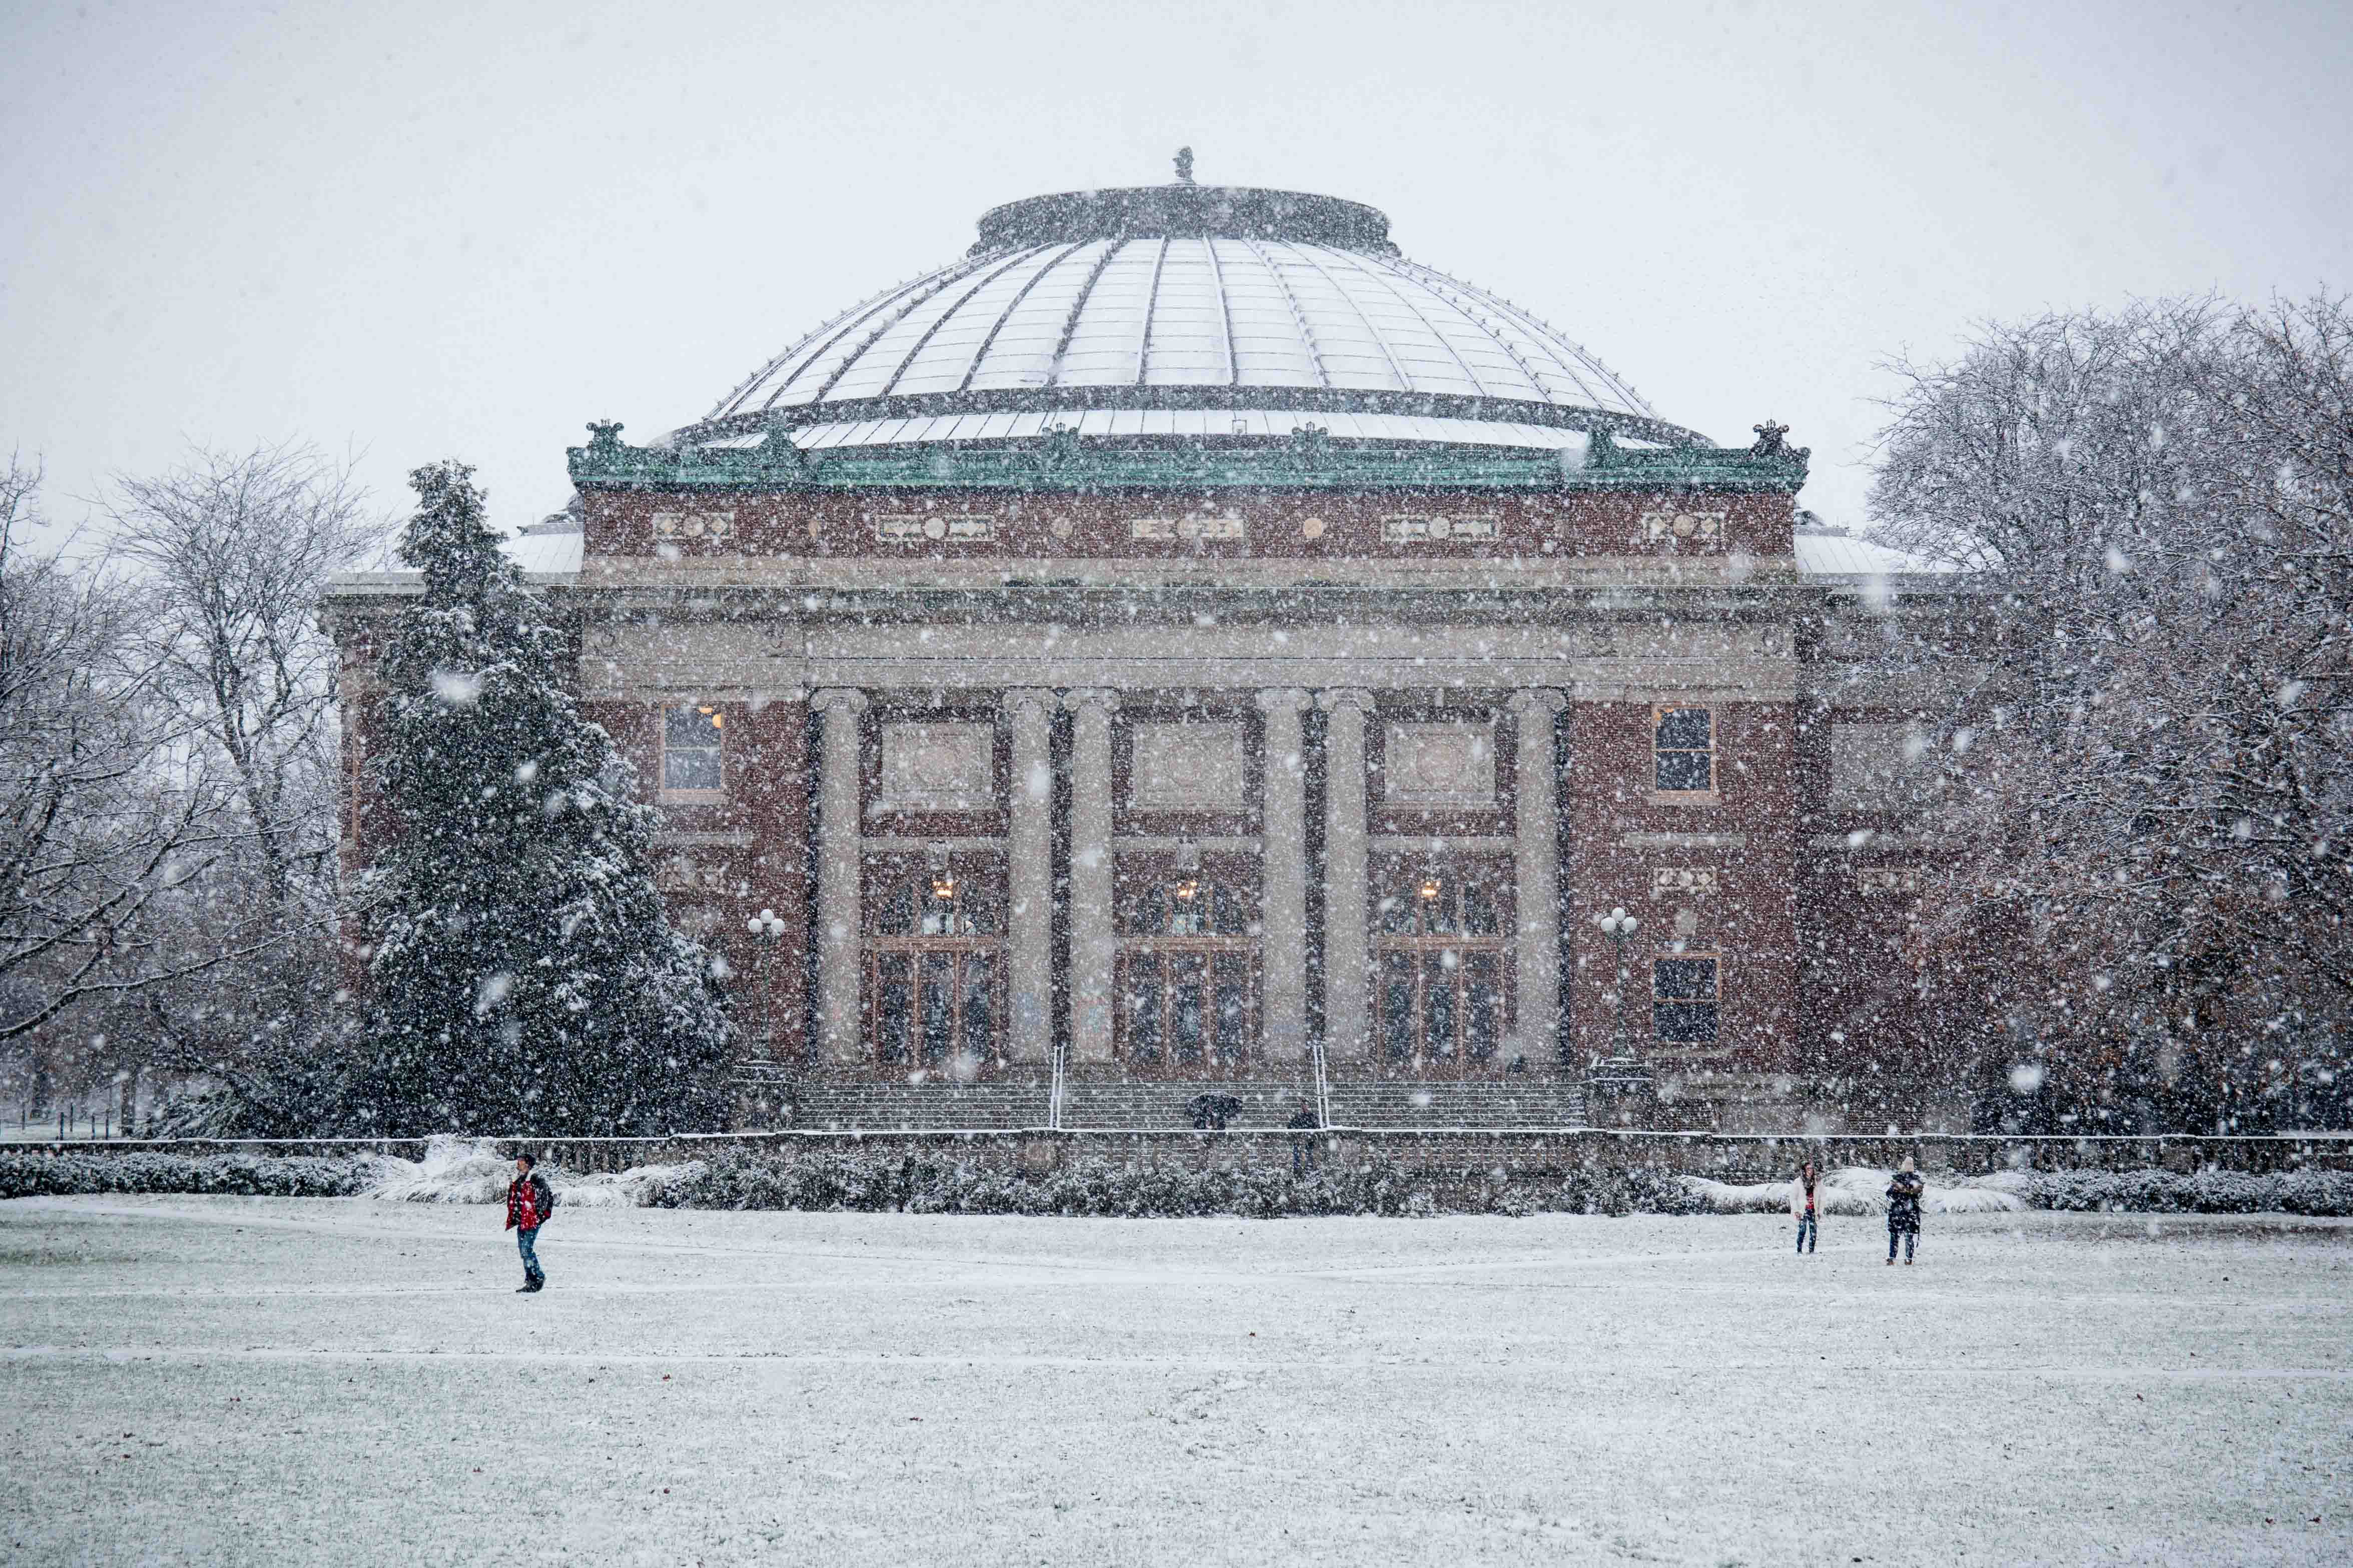 Foellinger Auditorium in the snow on Dec. 4. While living in the Midwest, it's important to know what is appropriate to wear during which season, writes brand manager Brooke.